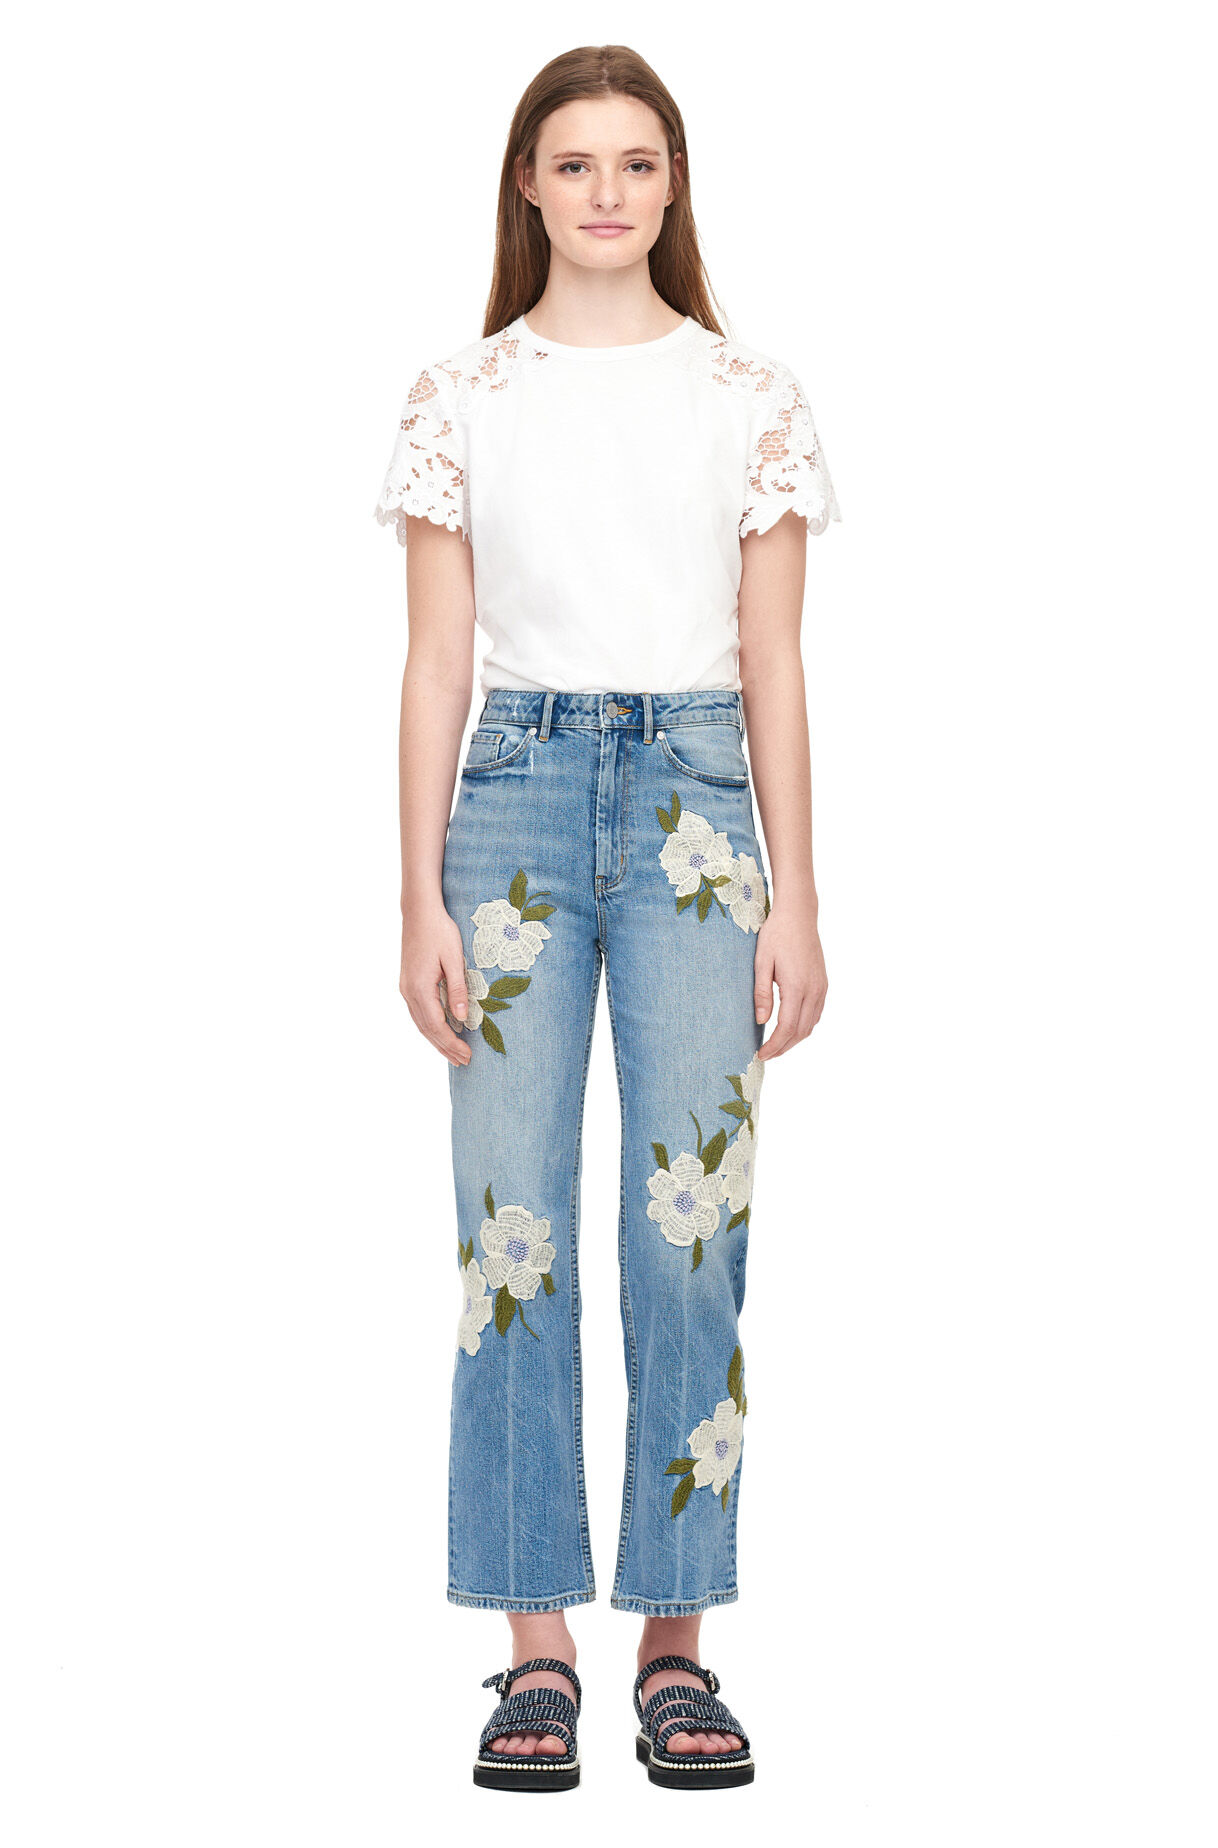 La Vie Floral Embroidered Anais Jean